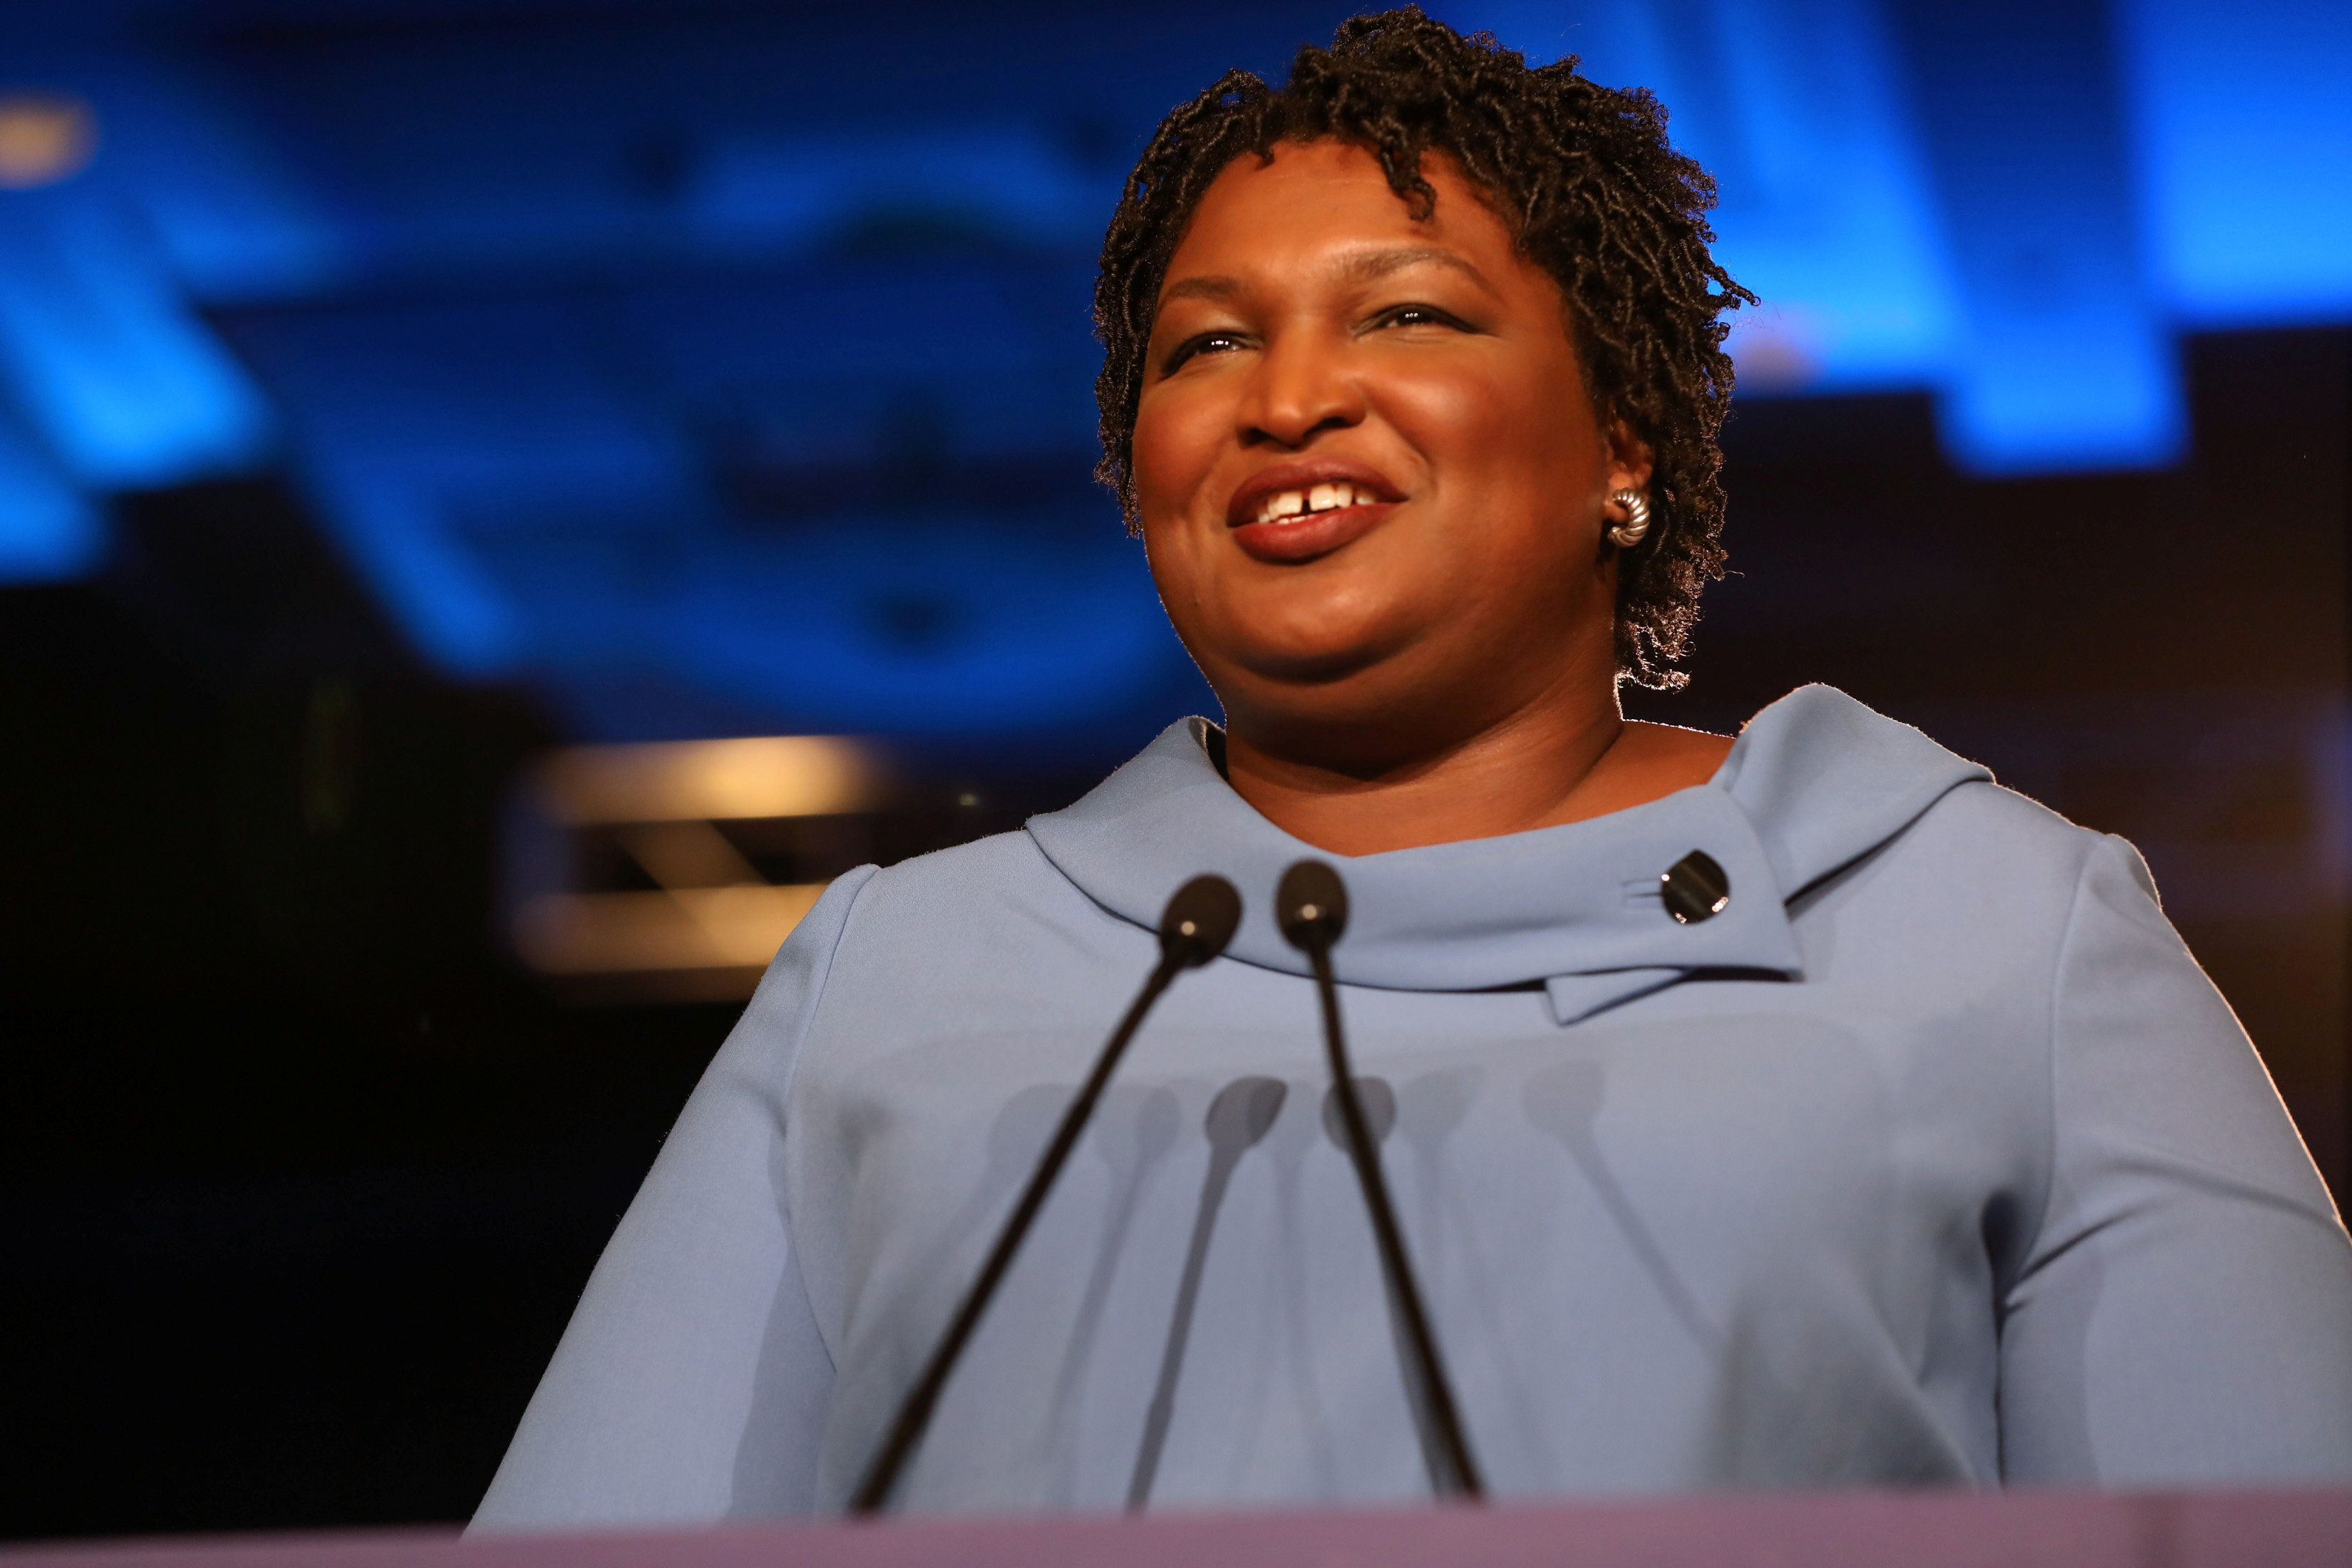 Stacey Abrams Says She'll Run Again After Losing Fierce Battle For Georgia Governor